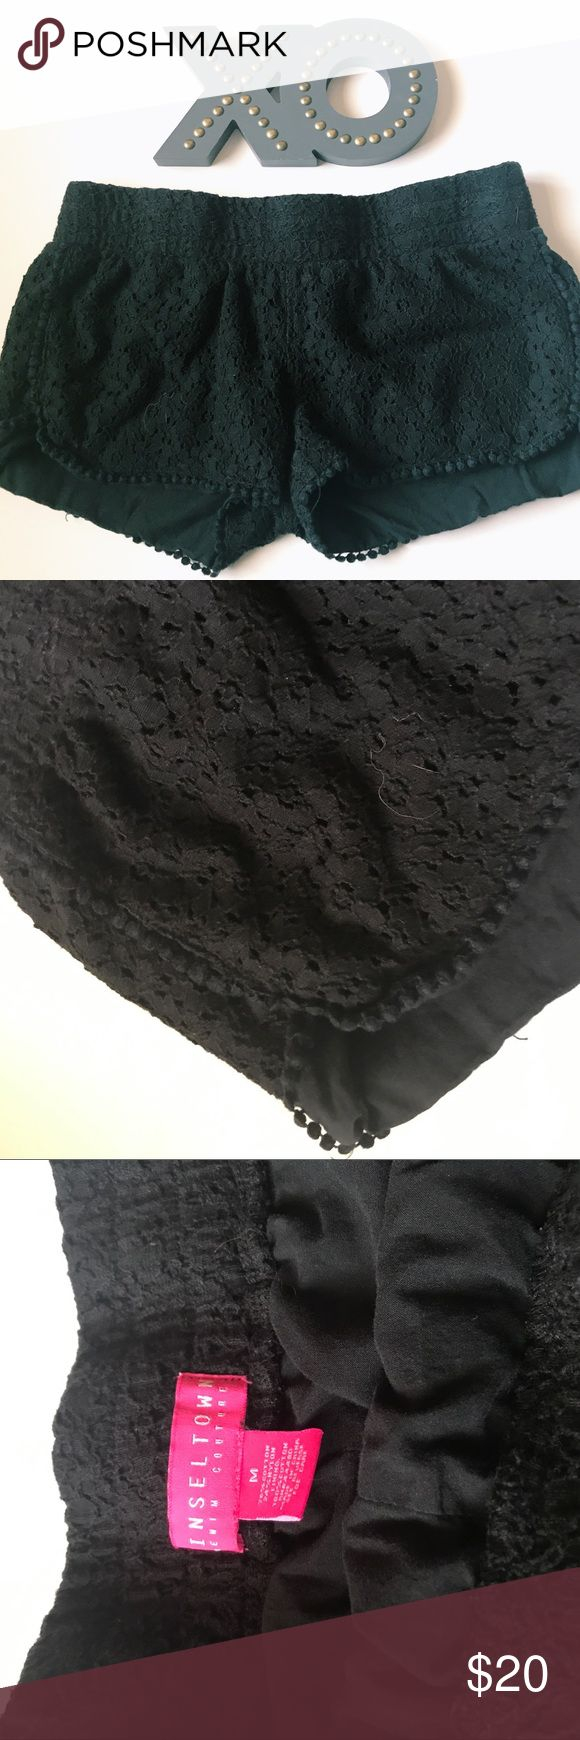 "Black Crochet Shorts Adorable shorts. Crochet black shorts. Comfy. Size medium. By the brand Tinseltown. Waist across 16"". Rise 8"". Inseam 2"". Fully lined.  ::142 Tinseltown Shorts"